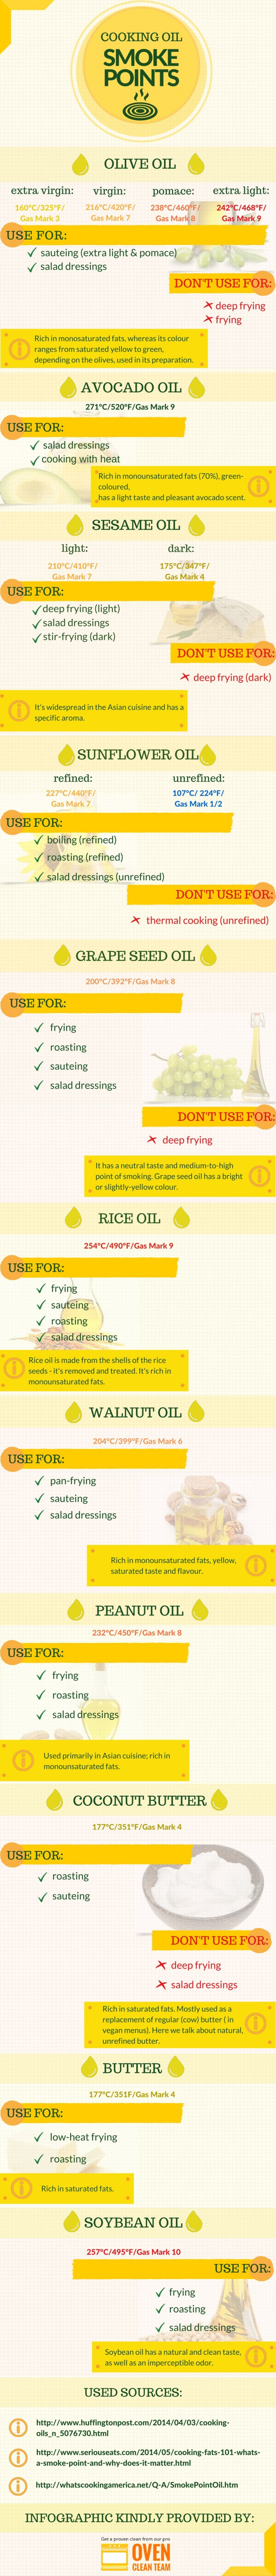 cooking-oil-smoke-points_55b1f4aaa6a9c_w1500